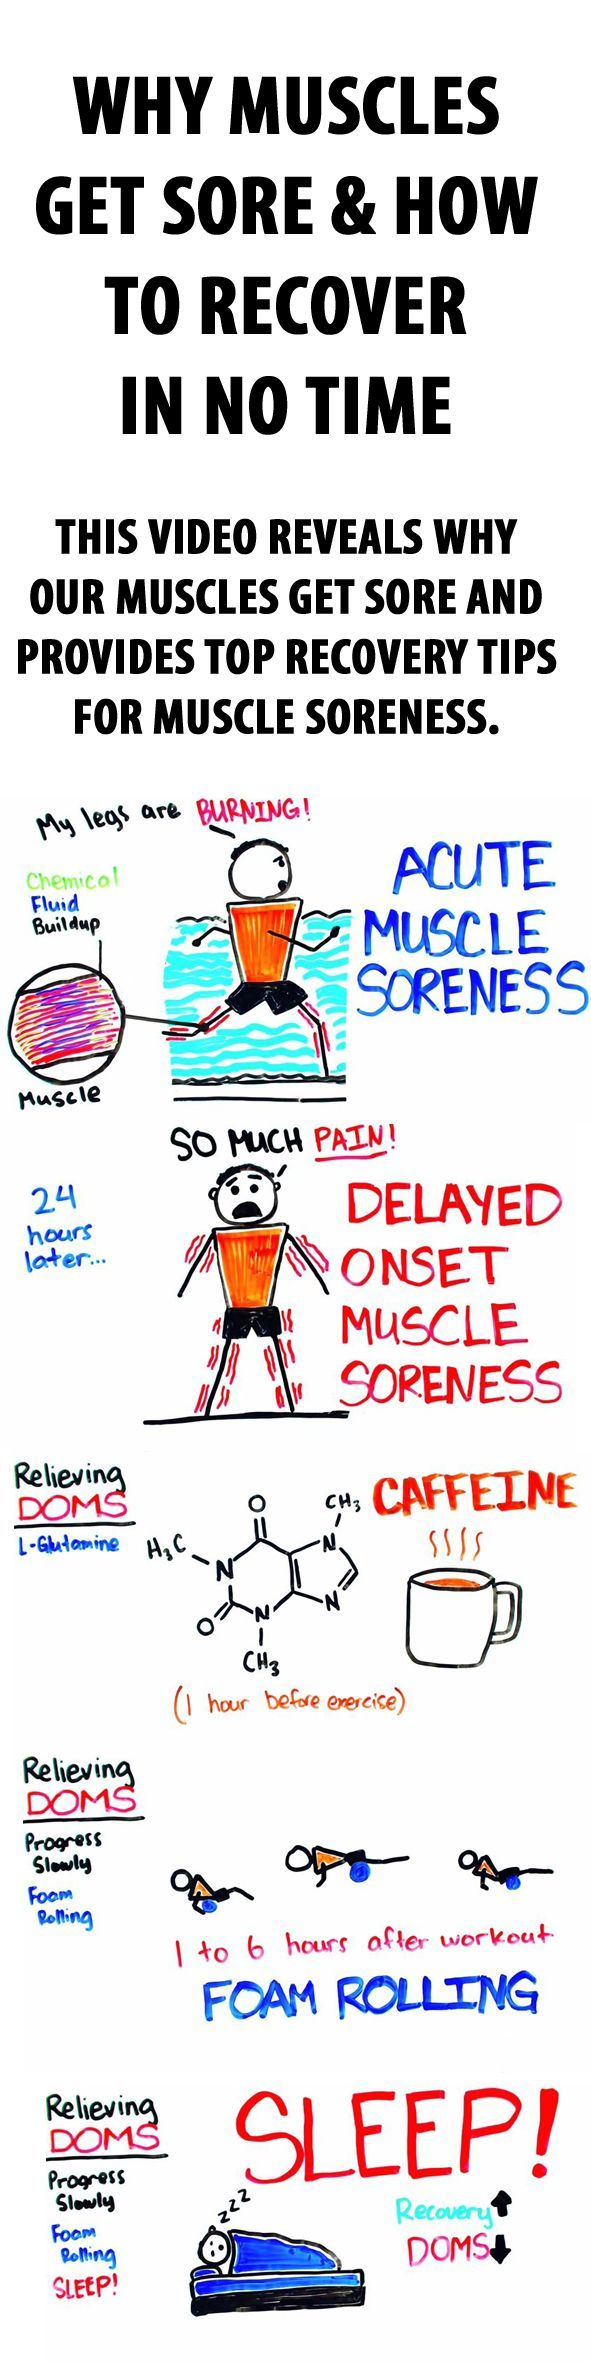 Why muscles get sore & how to recover in no time. #musclesoreness #musclerecovery #muscles #musclepain